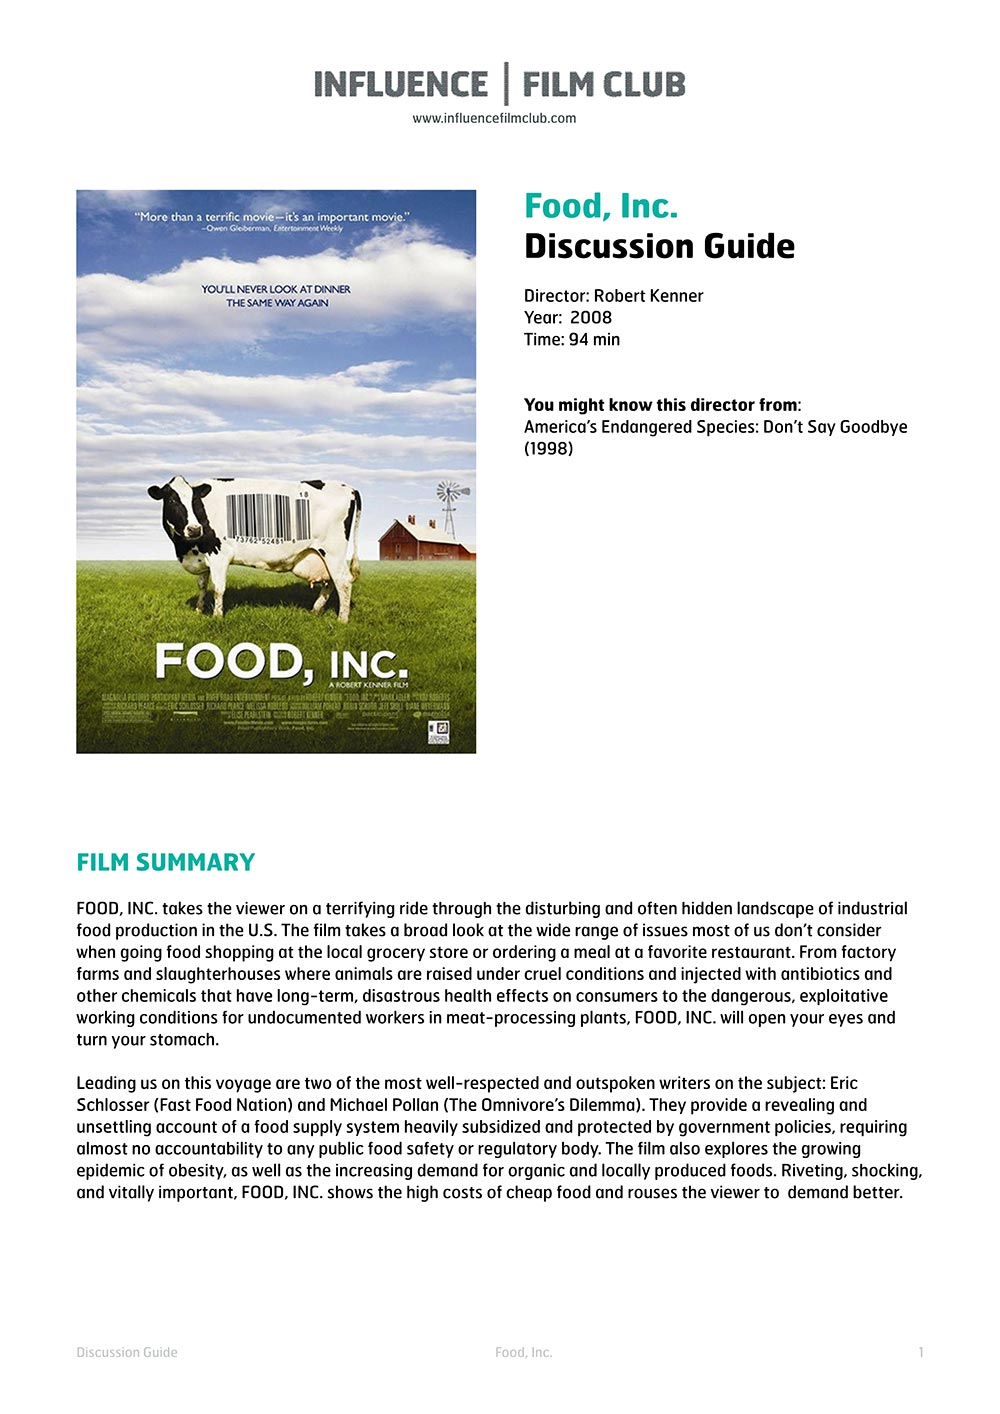 Food, Inc. | Influence Film Club